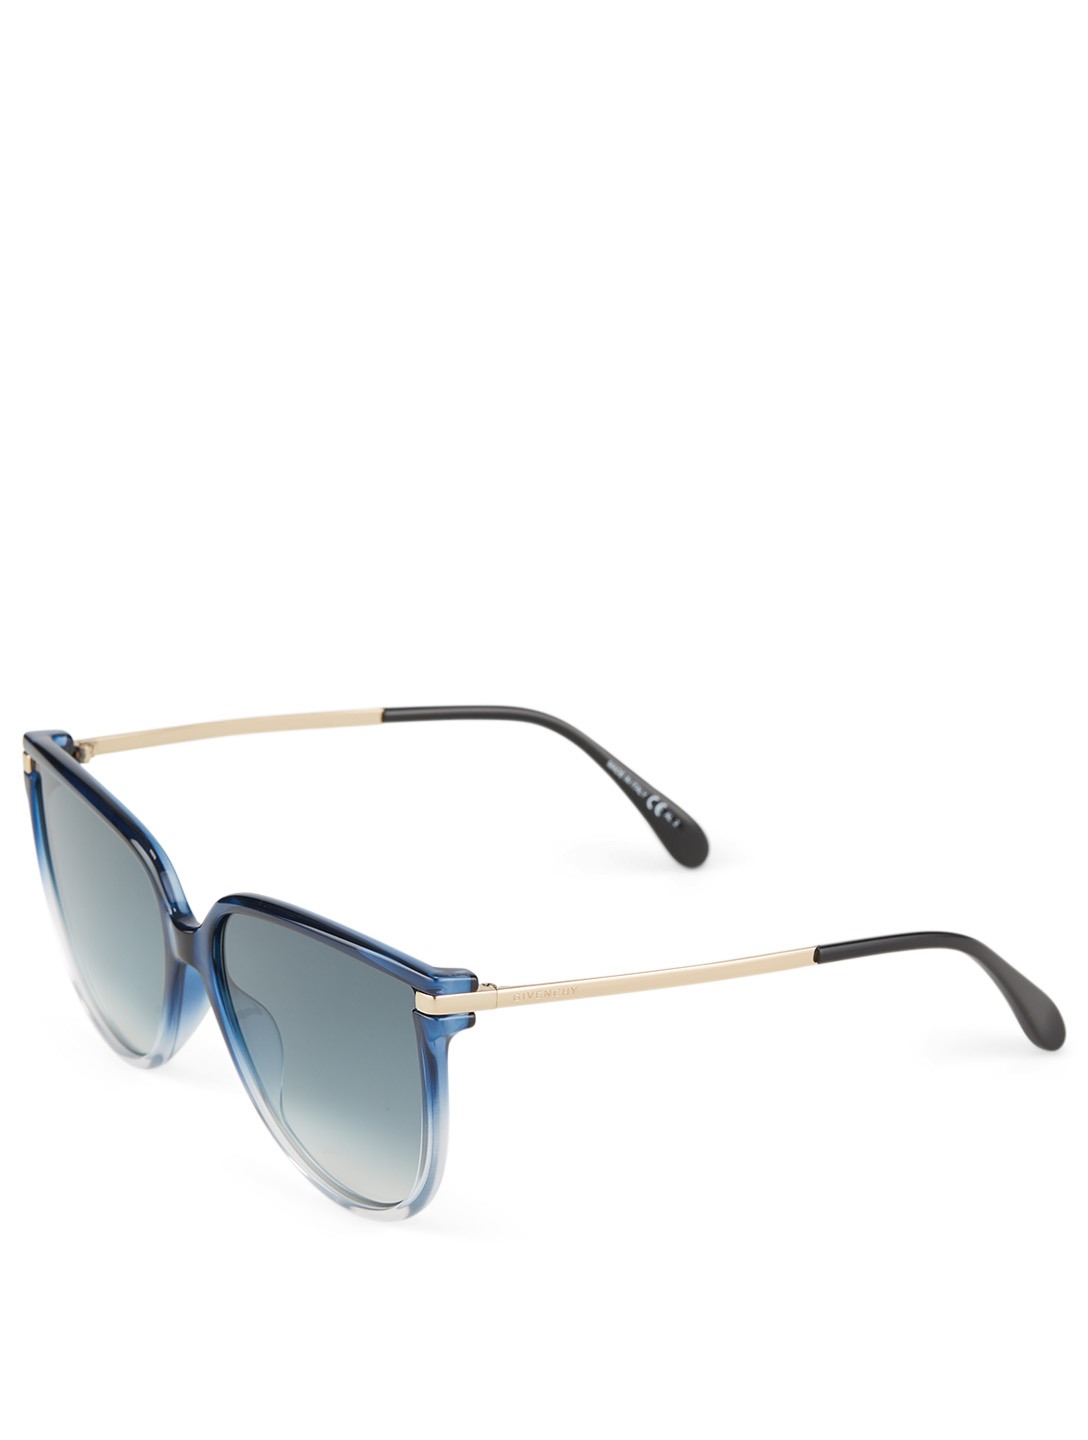 GIVENCHY Round Sunglasses Women's Blue